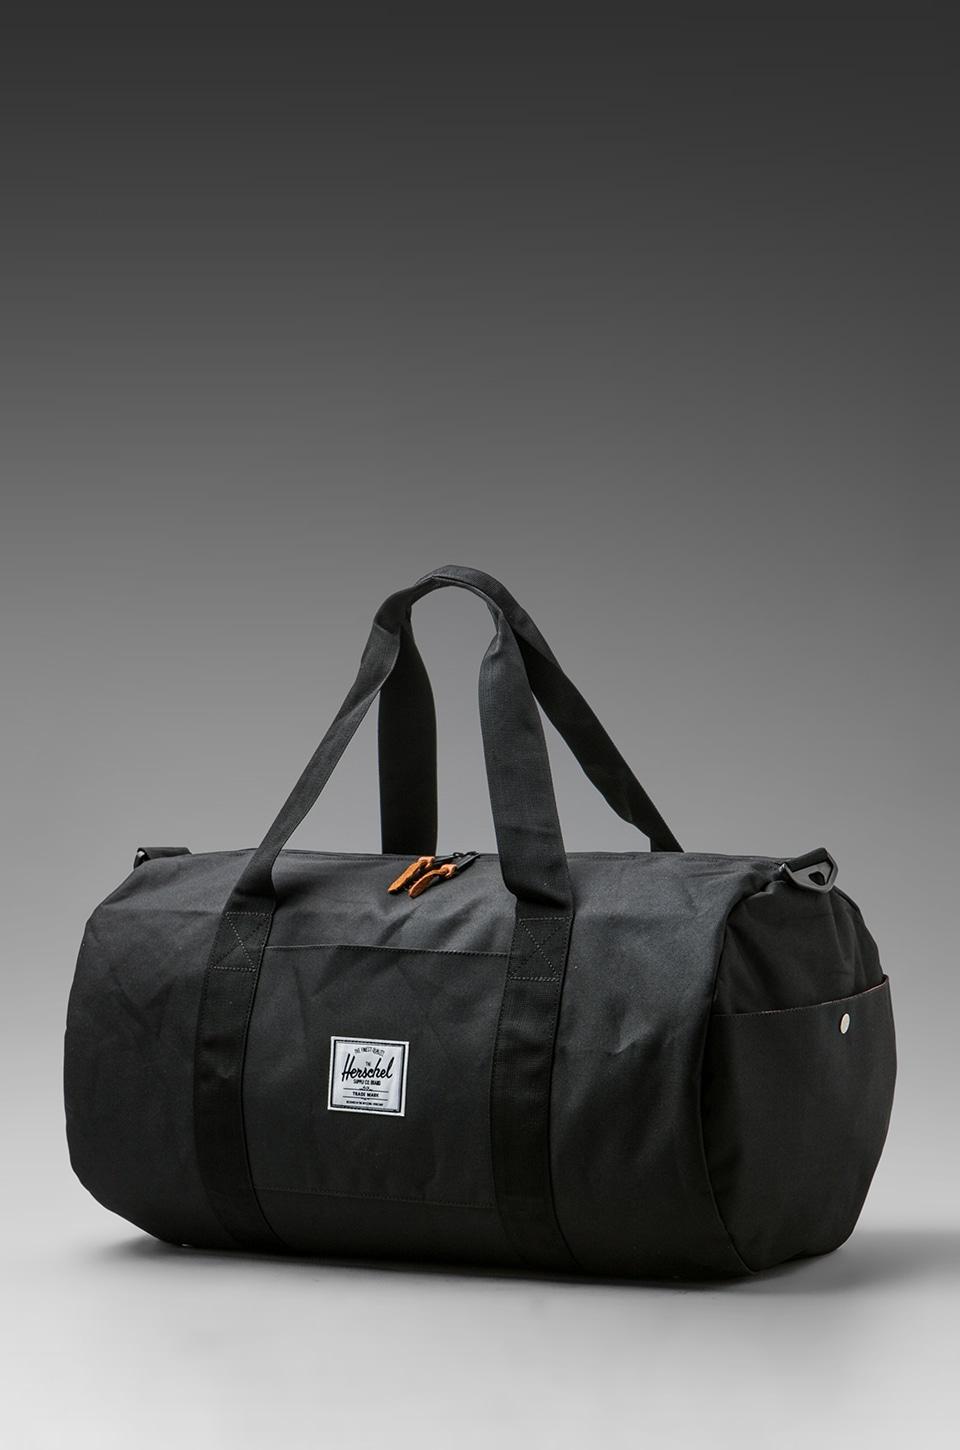 Herschel Supply Co. Sutton Bag in Black